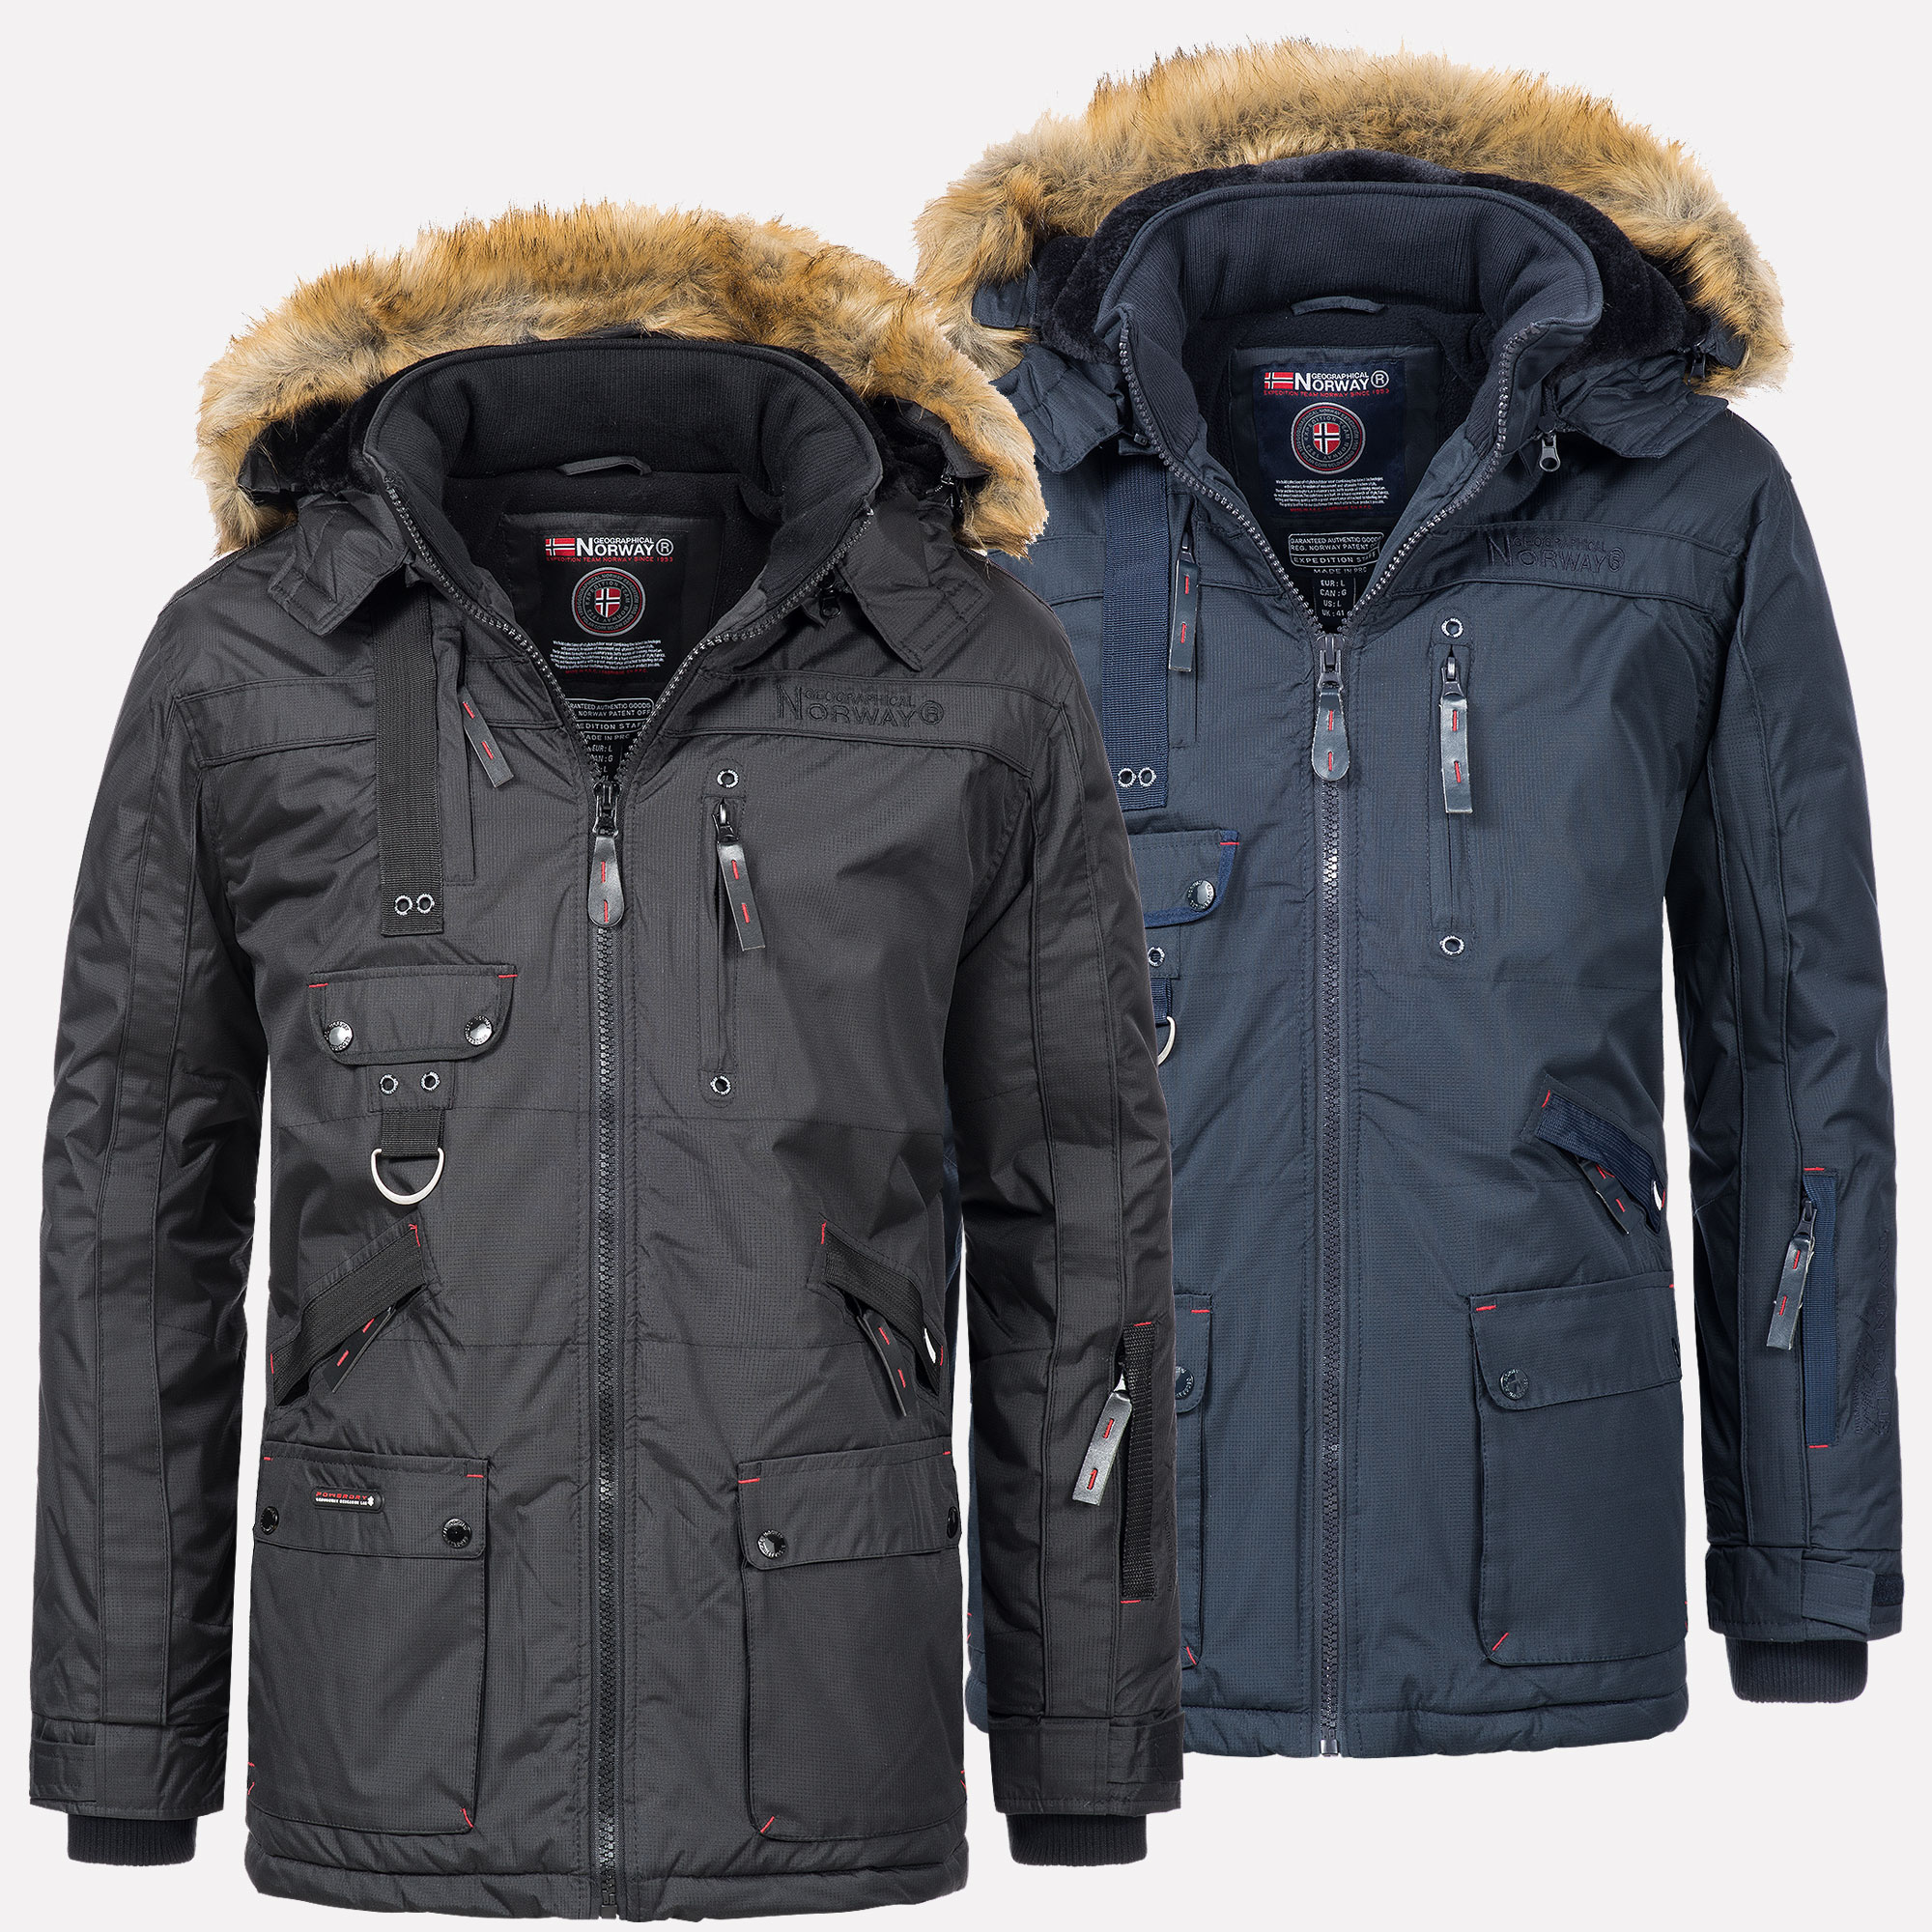 Geographical Norway Techno Men's Royal Blue Parkas